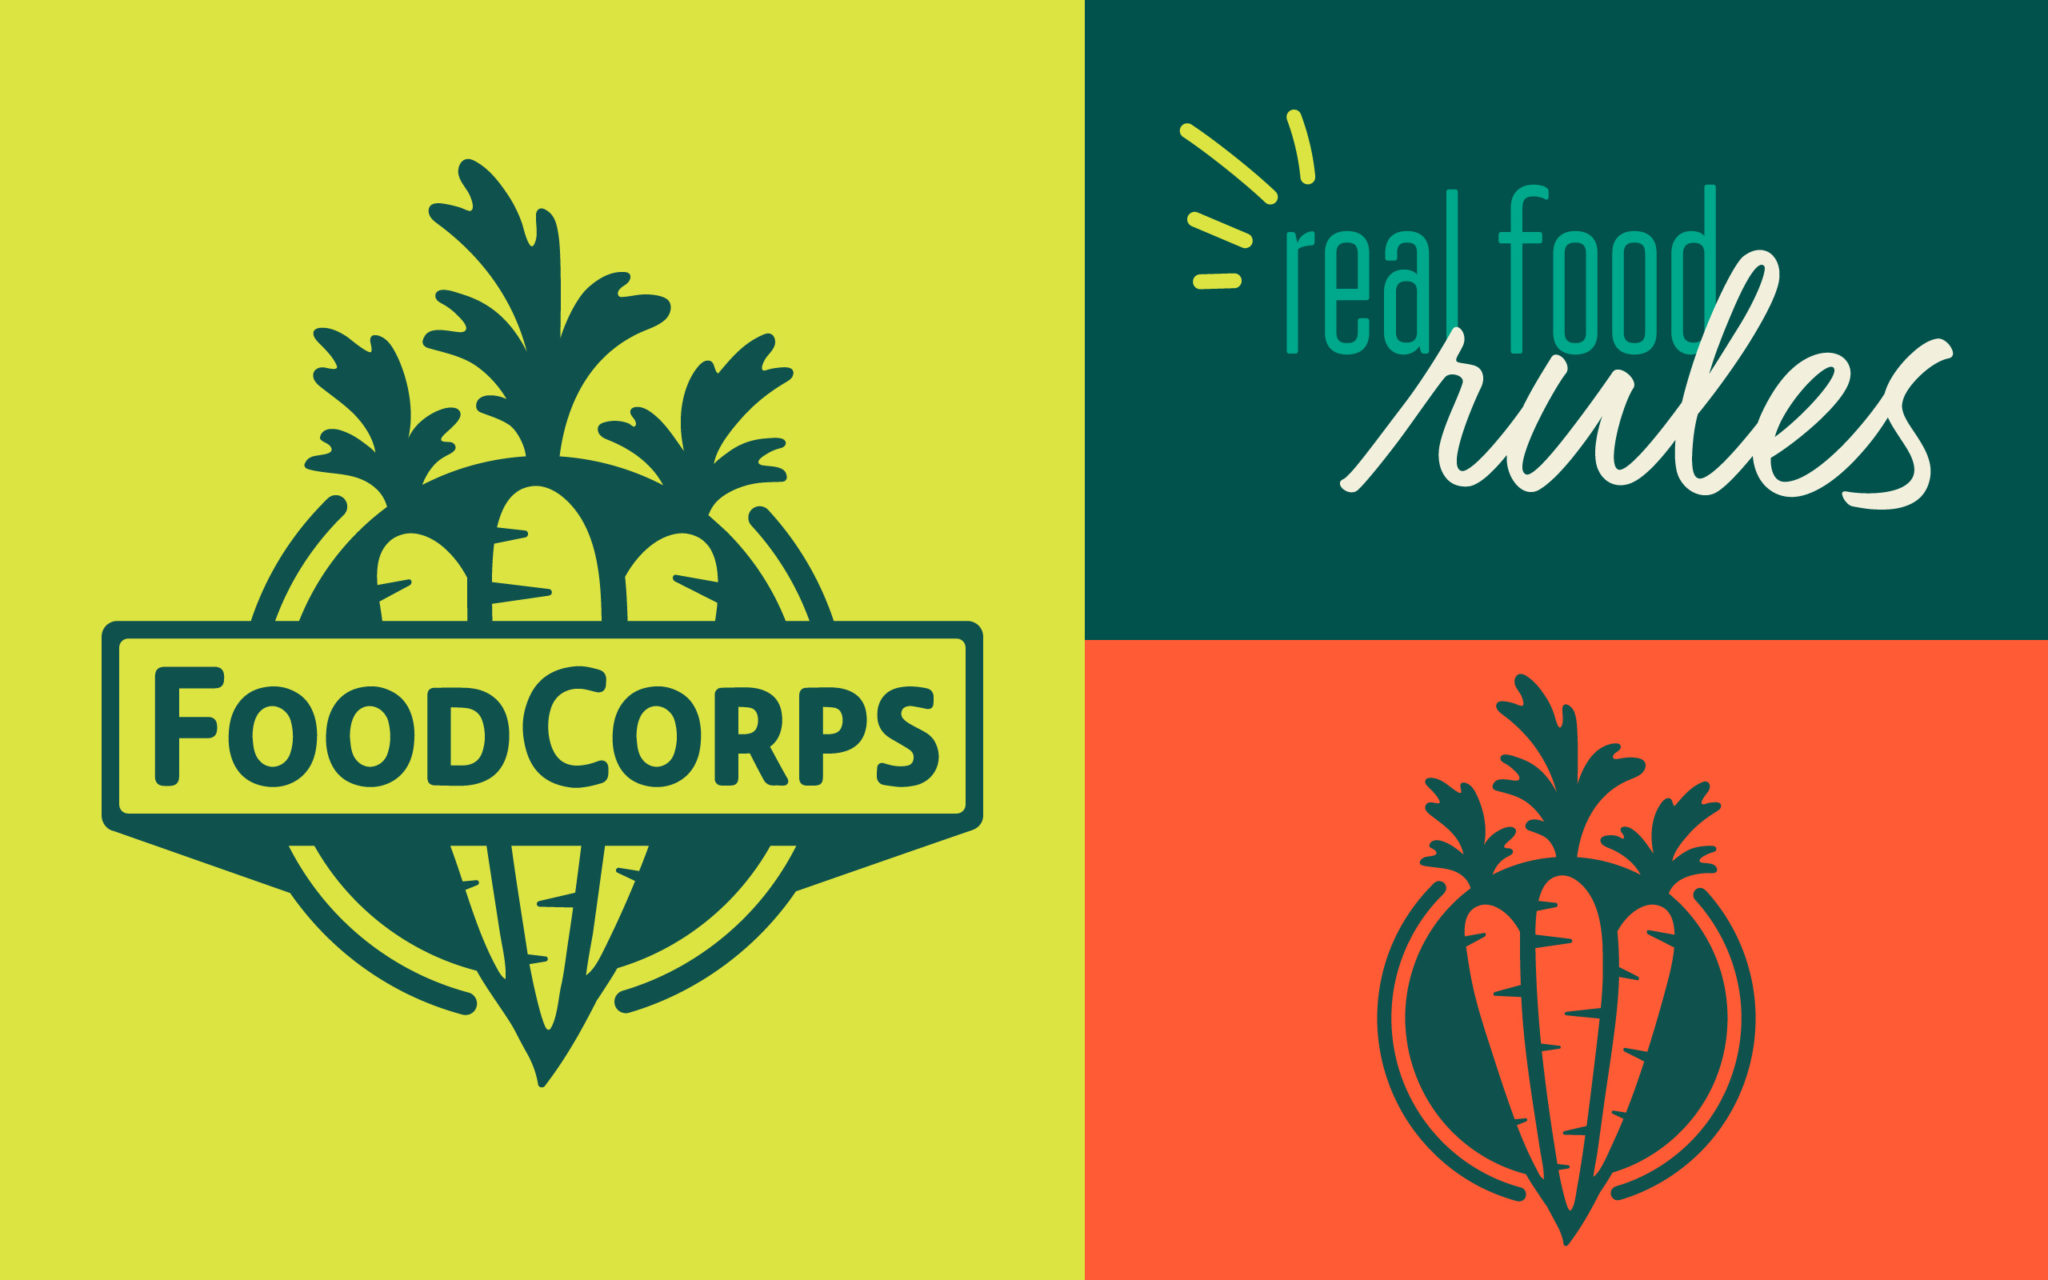 FoodCorps_Feature4.jpg